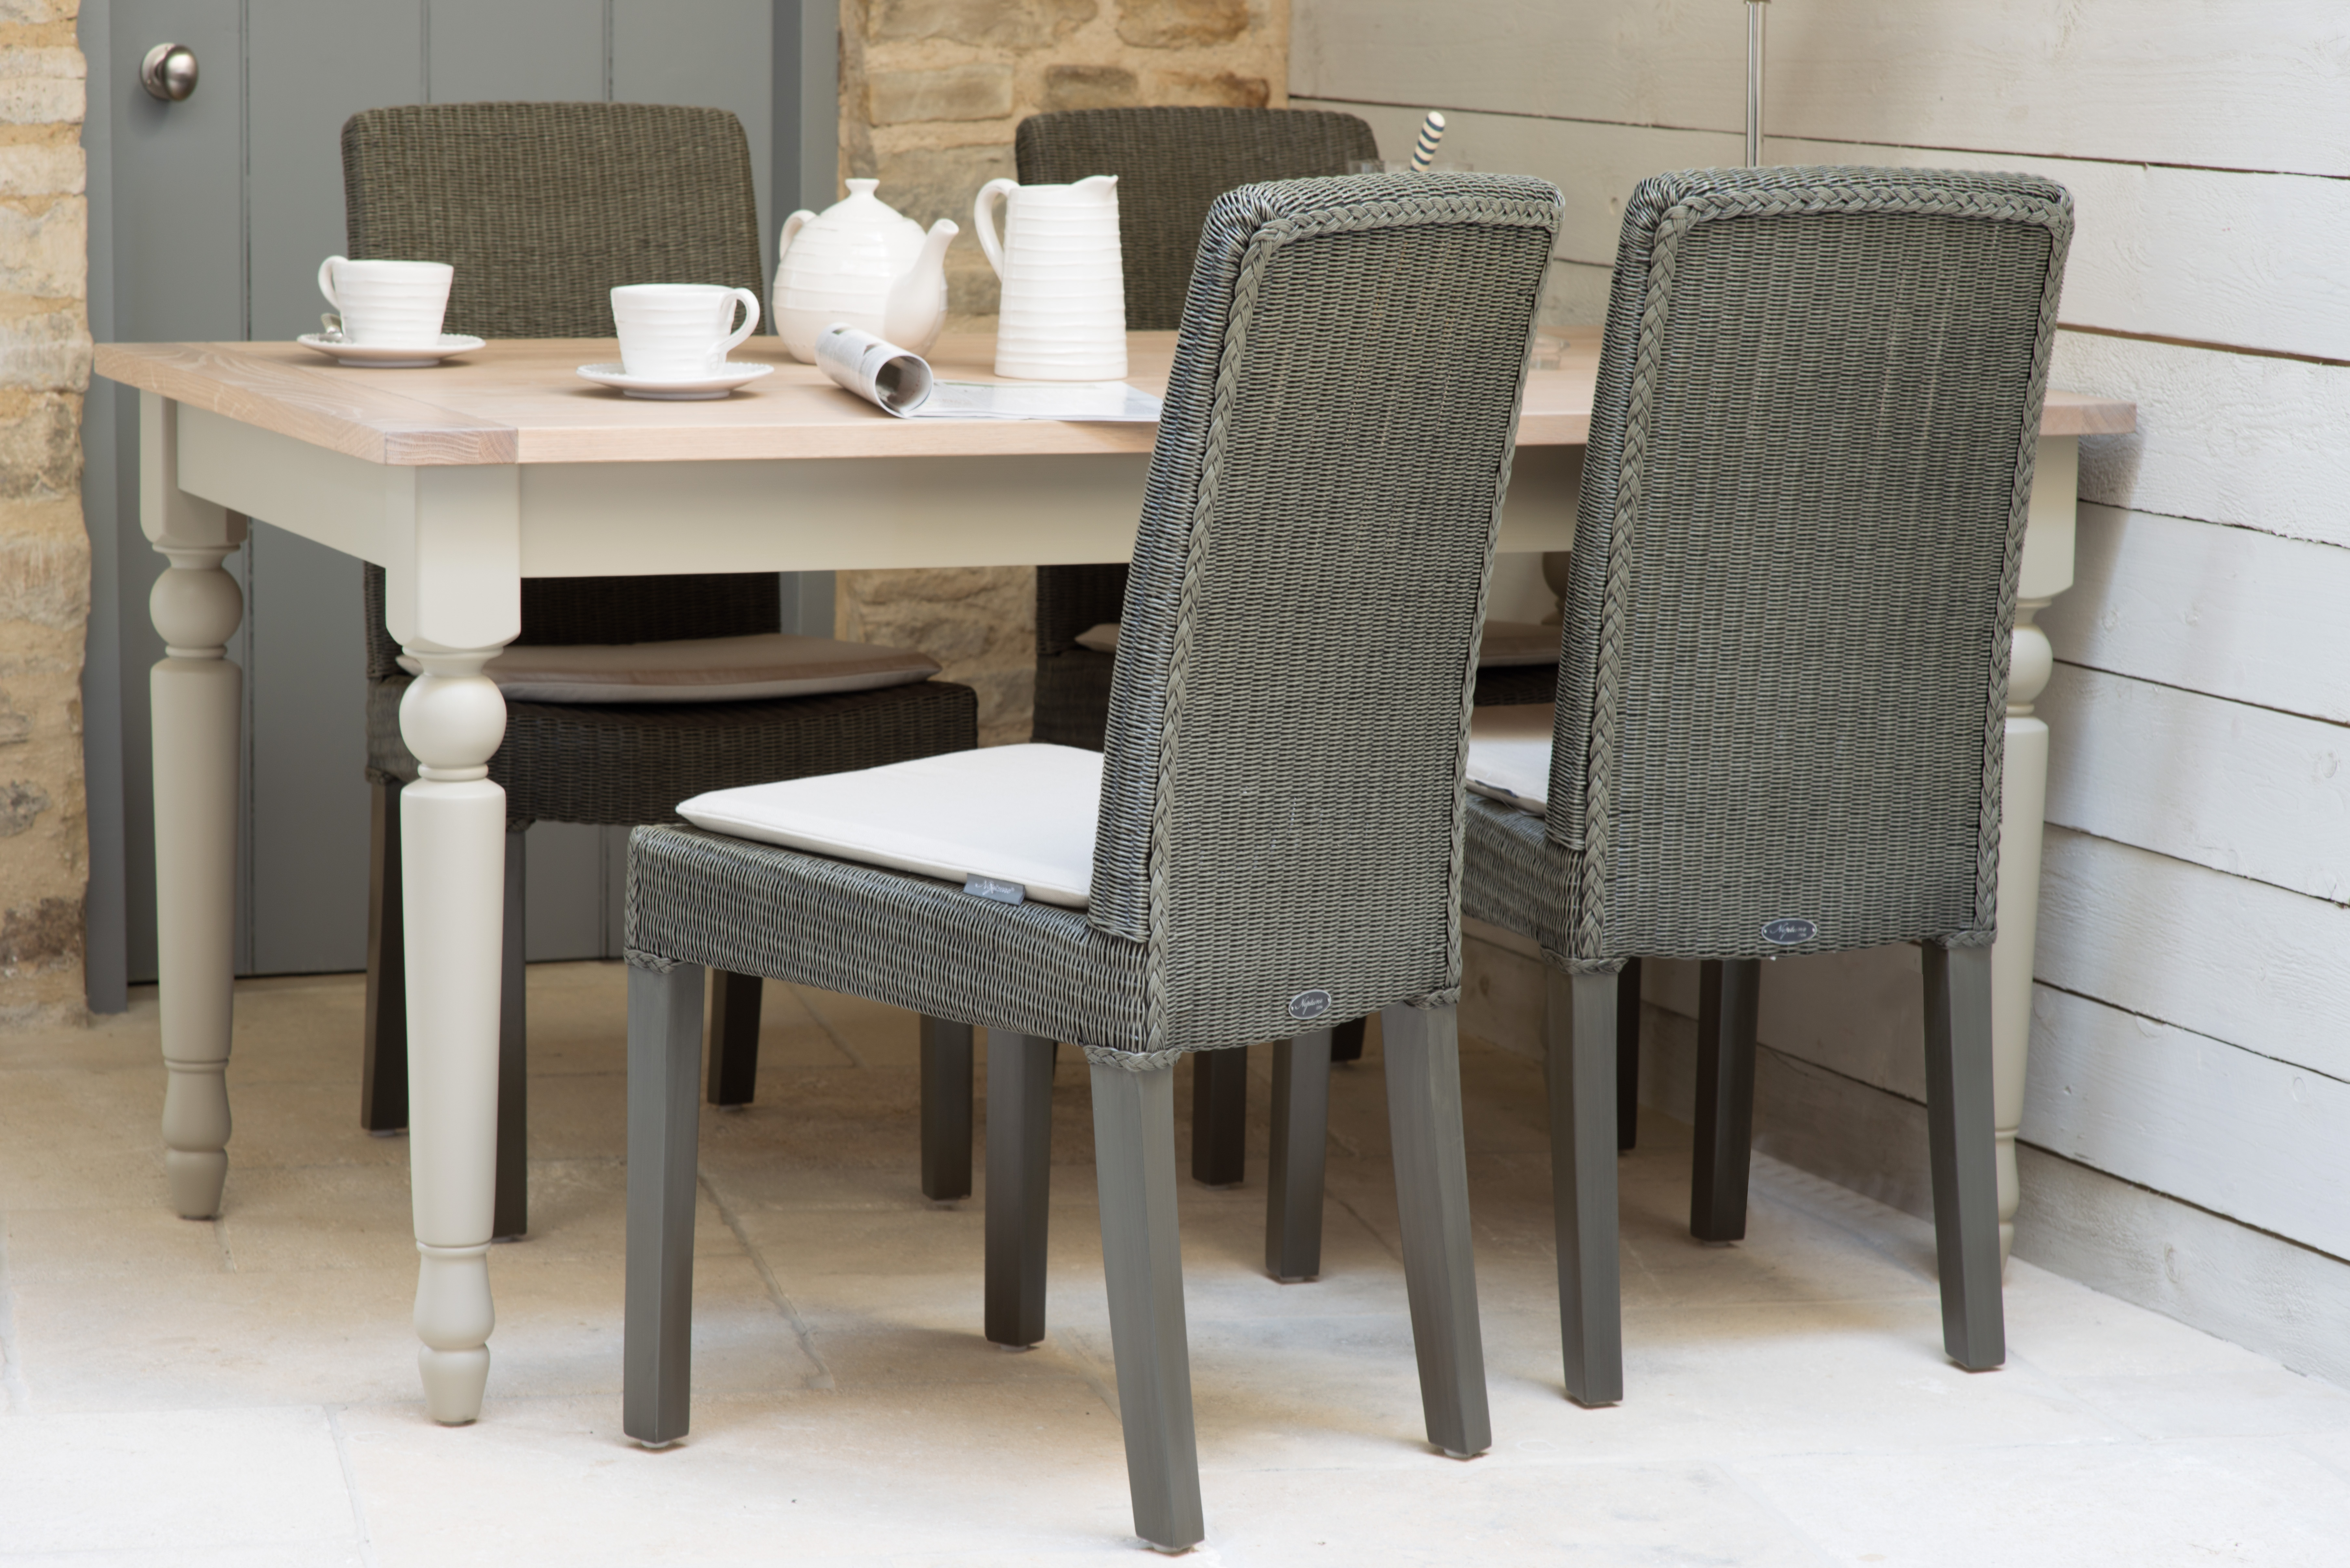 Neptune Montague Lloyd Loom Chairs Dining Chairs : GetImage from www.neptune.com size 1000 x 667 jpeg 426kB